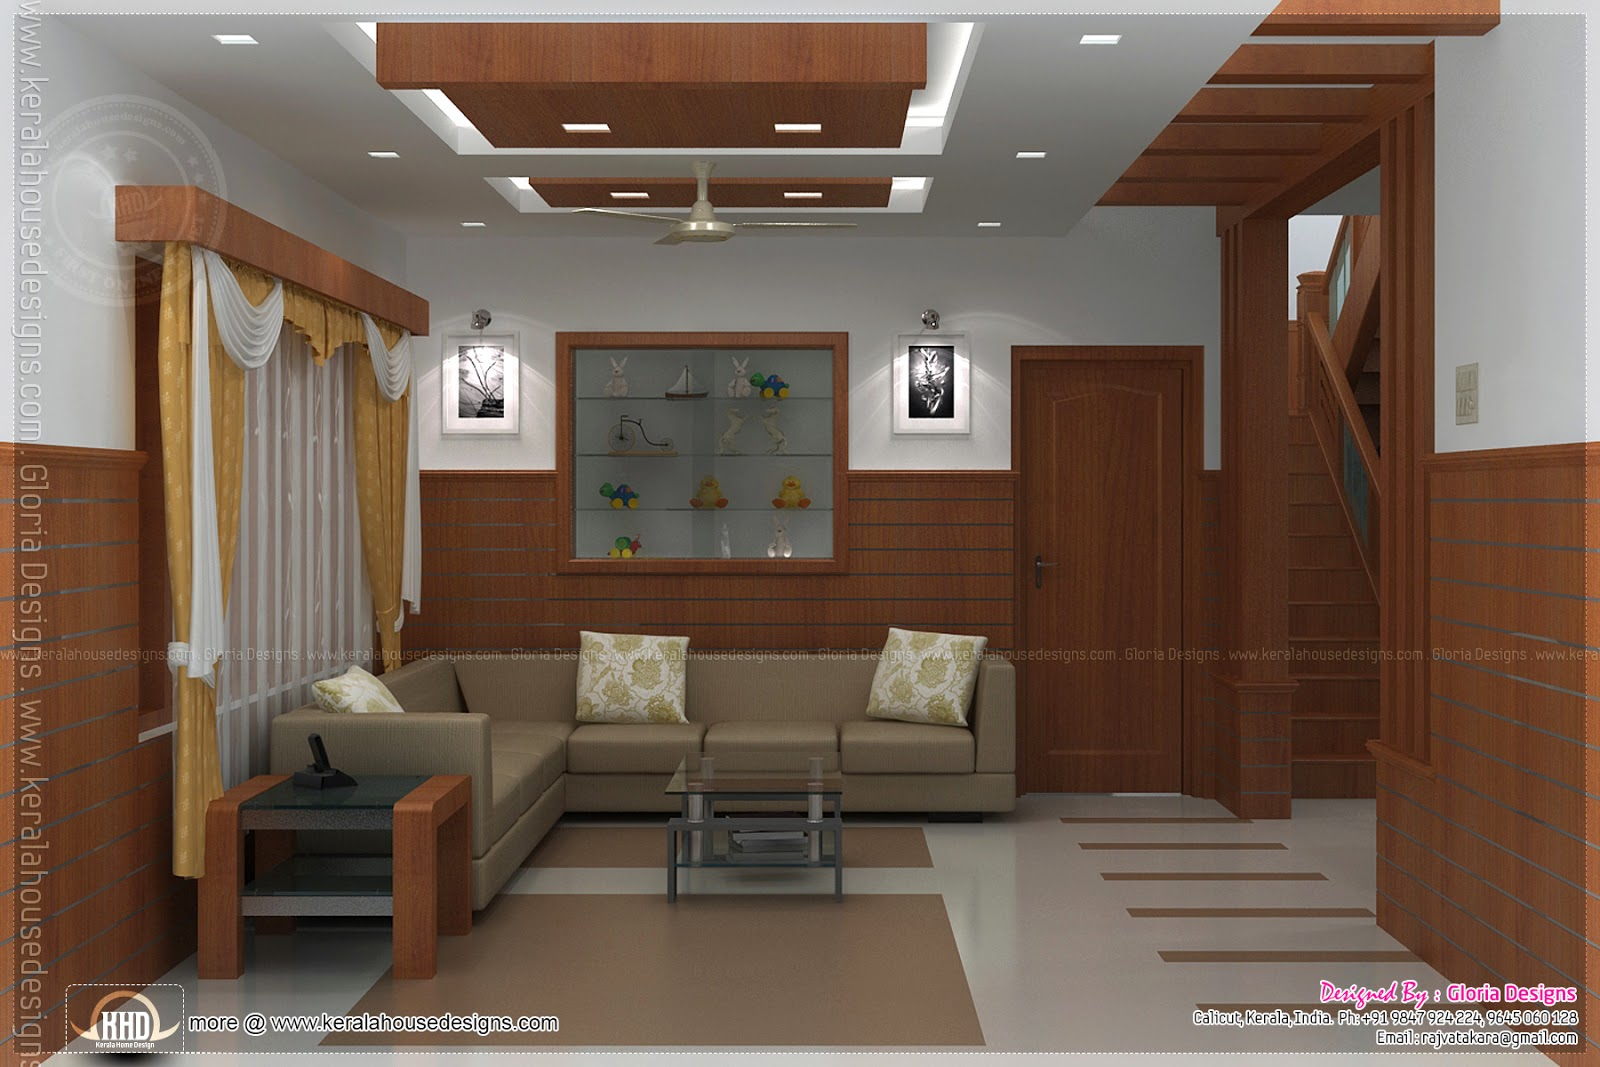 Home Interior Design Ideas Kerala: Home Interior Designs By Gloria Designs, Calicut